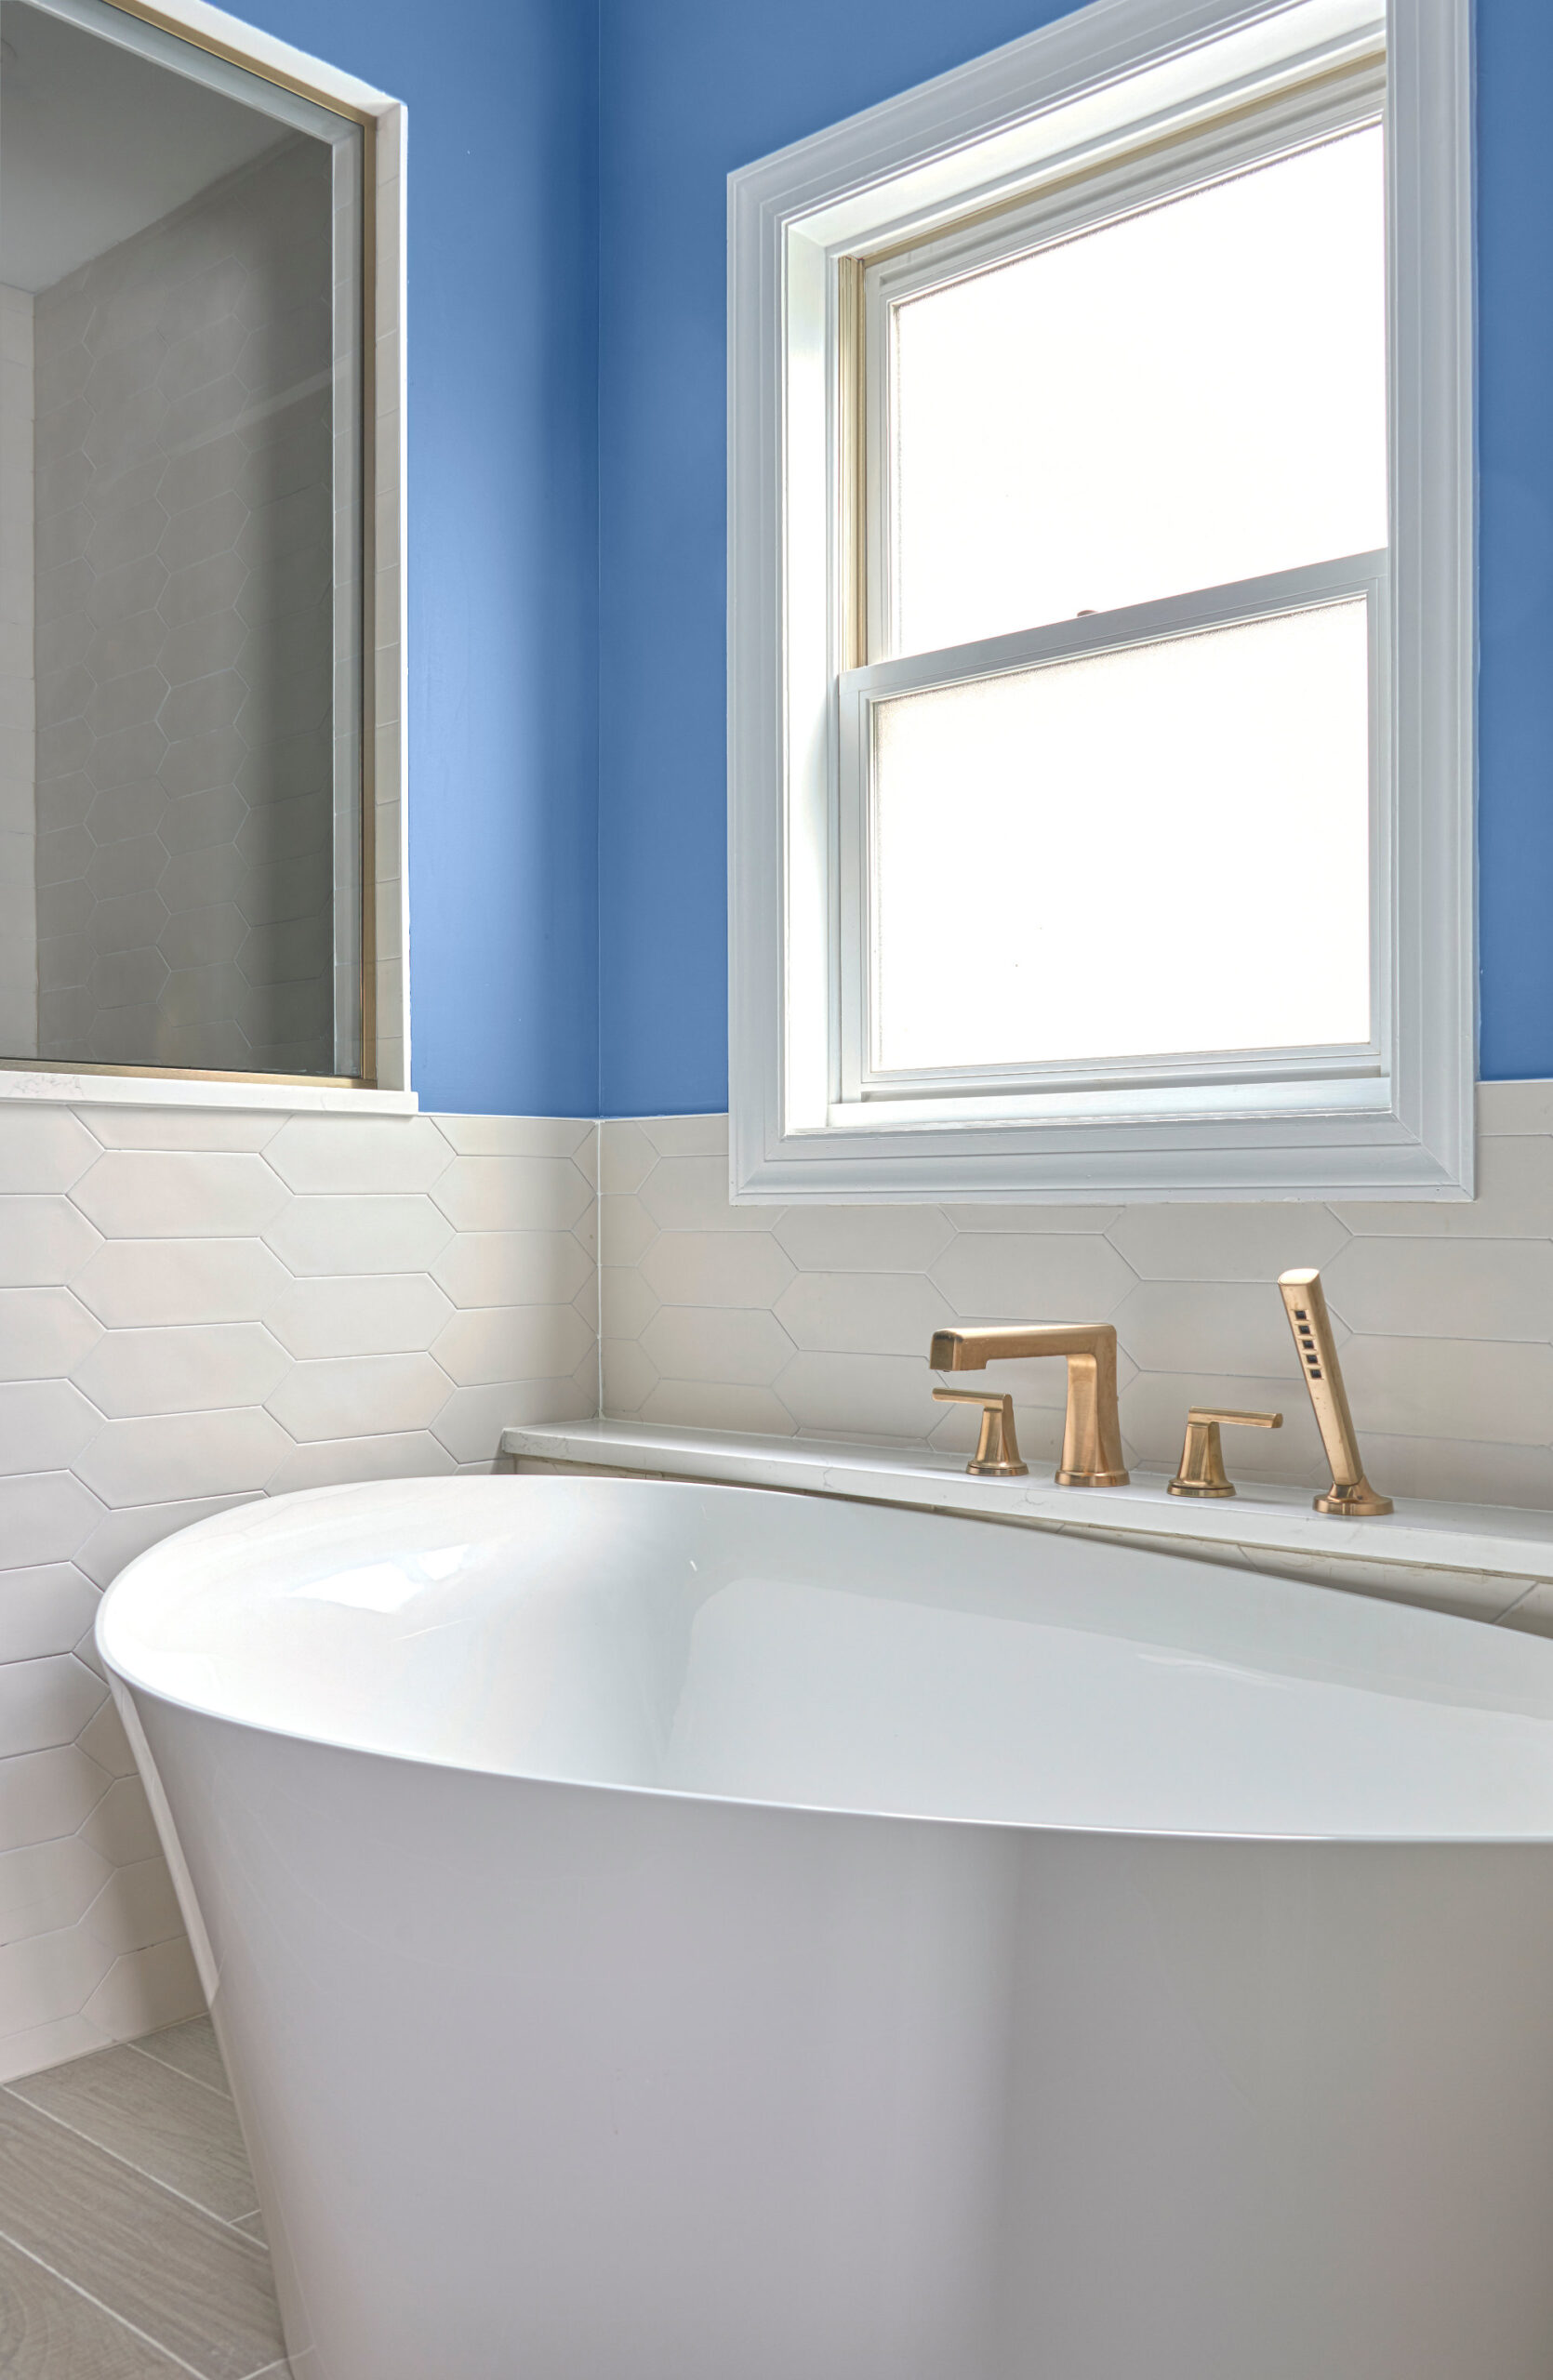 Chicago Lincoln Square Bathroom Tub Remodeling